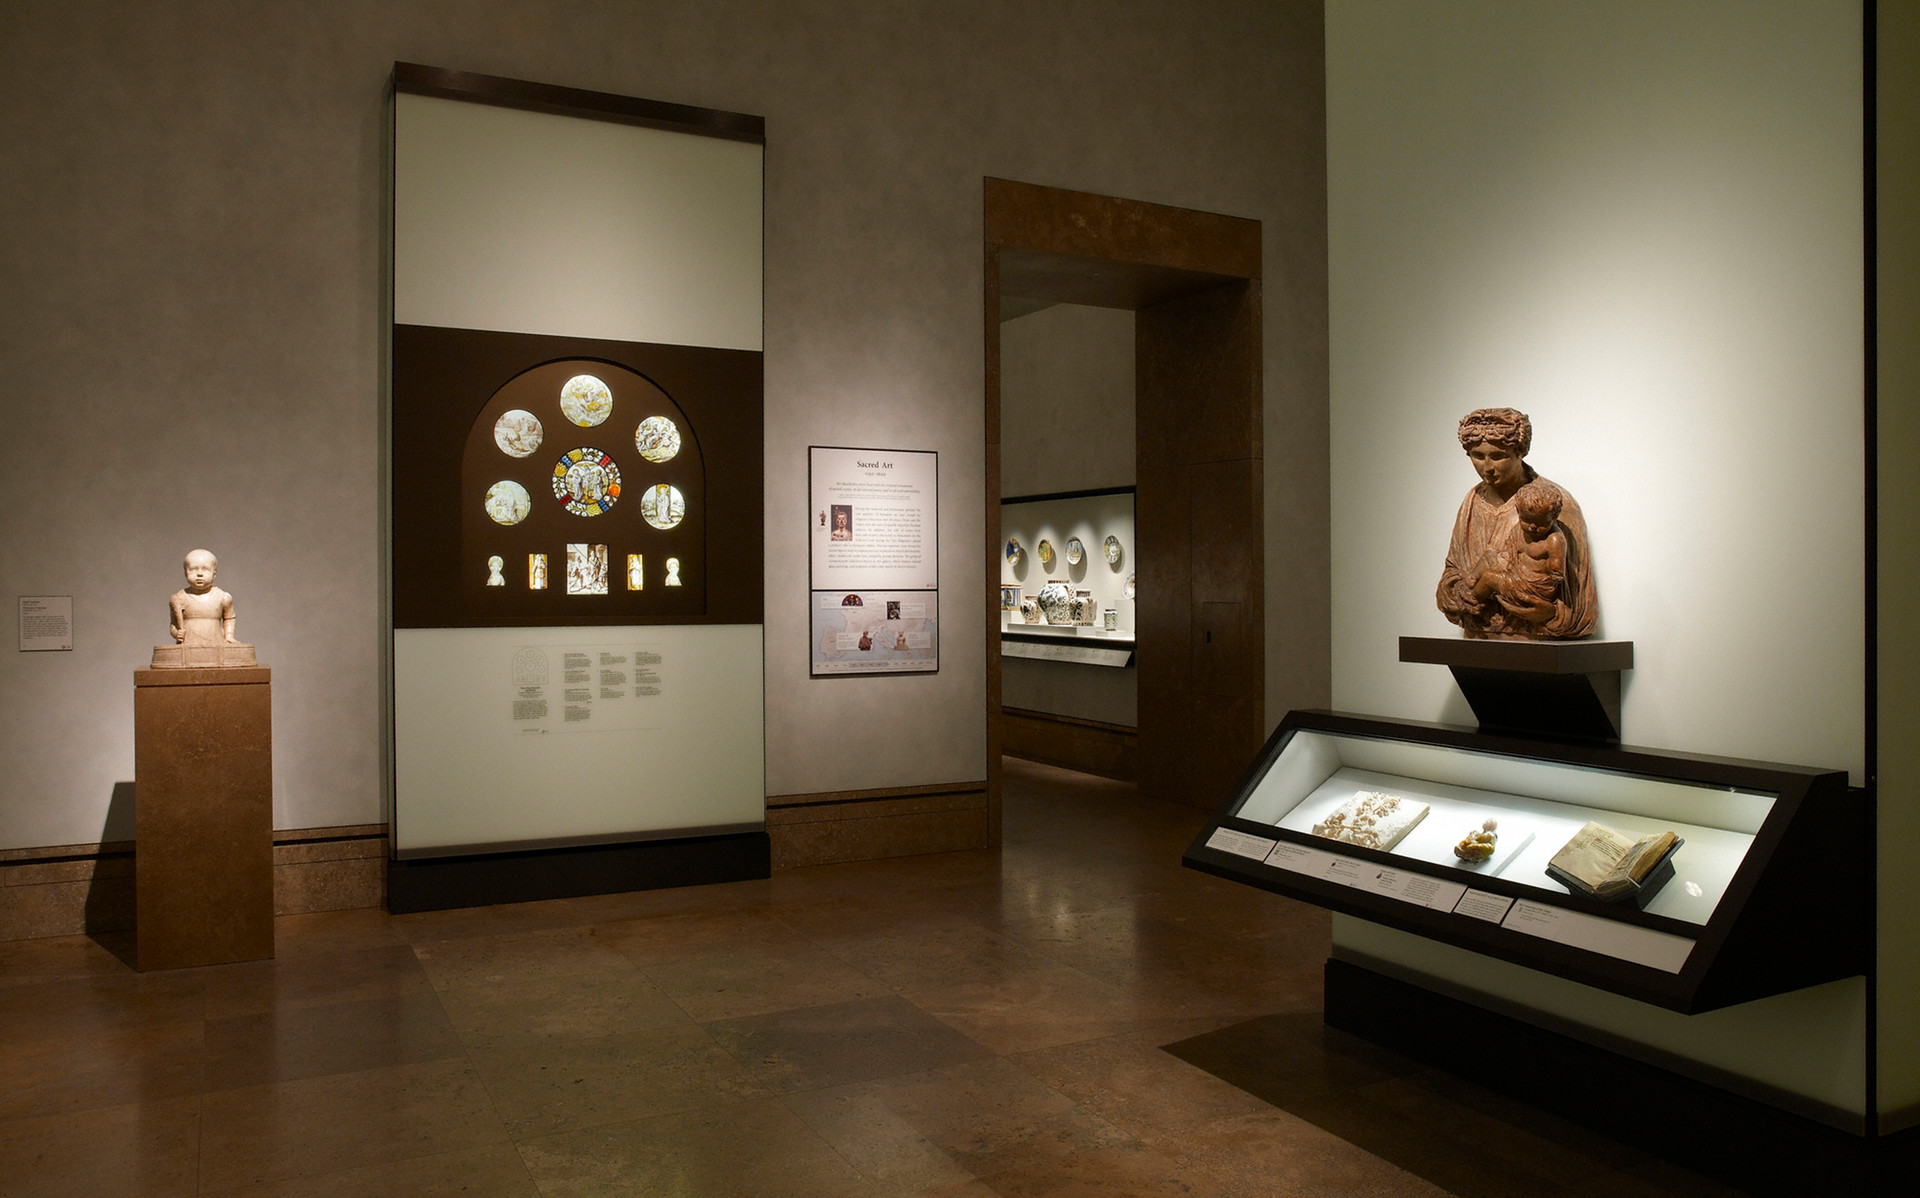 Getty stained glass collection on display for the first time.